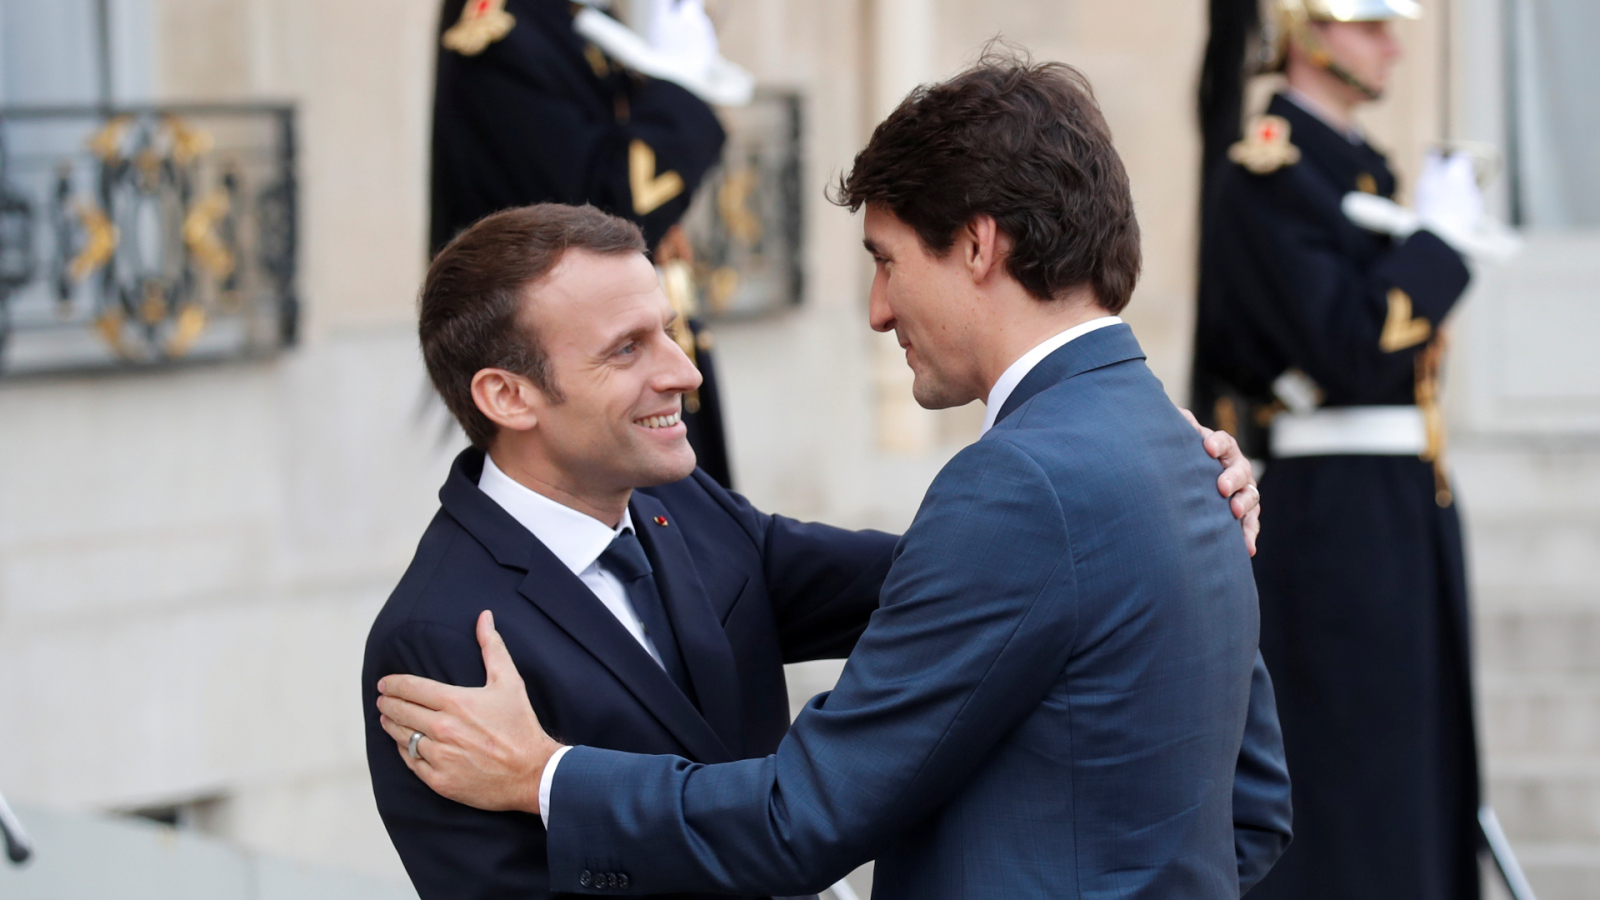 Justin Trudeau and Emmanuel Macron's bromance continues in Paris